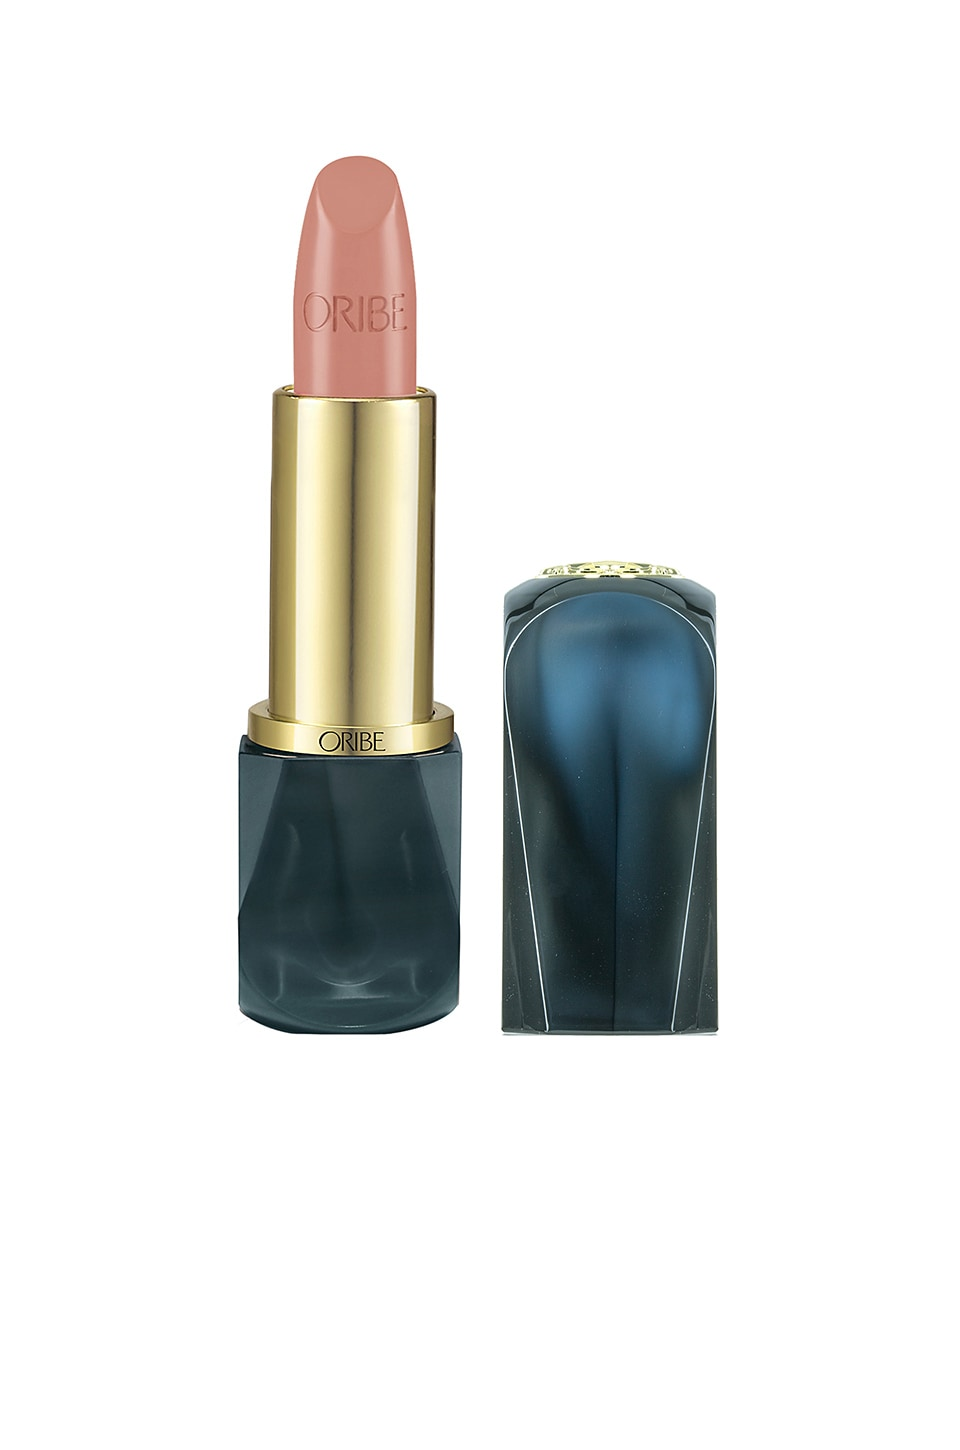 Oribe Lip Lust Creme Lipstick in The Nude